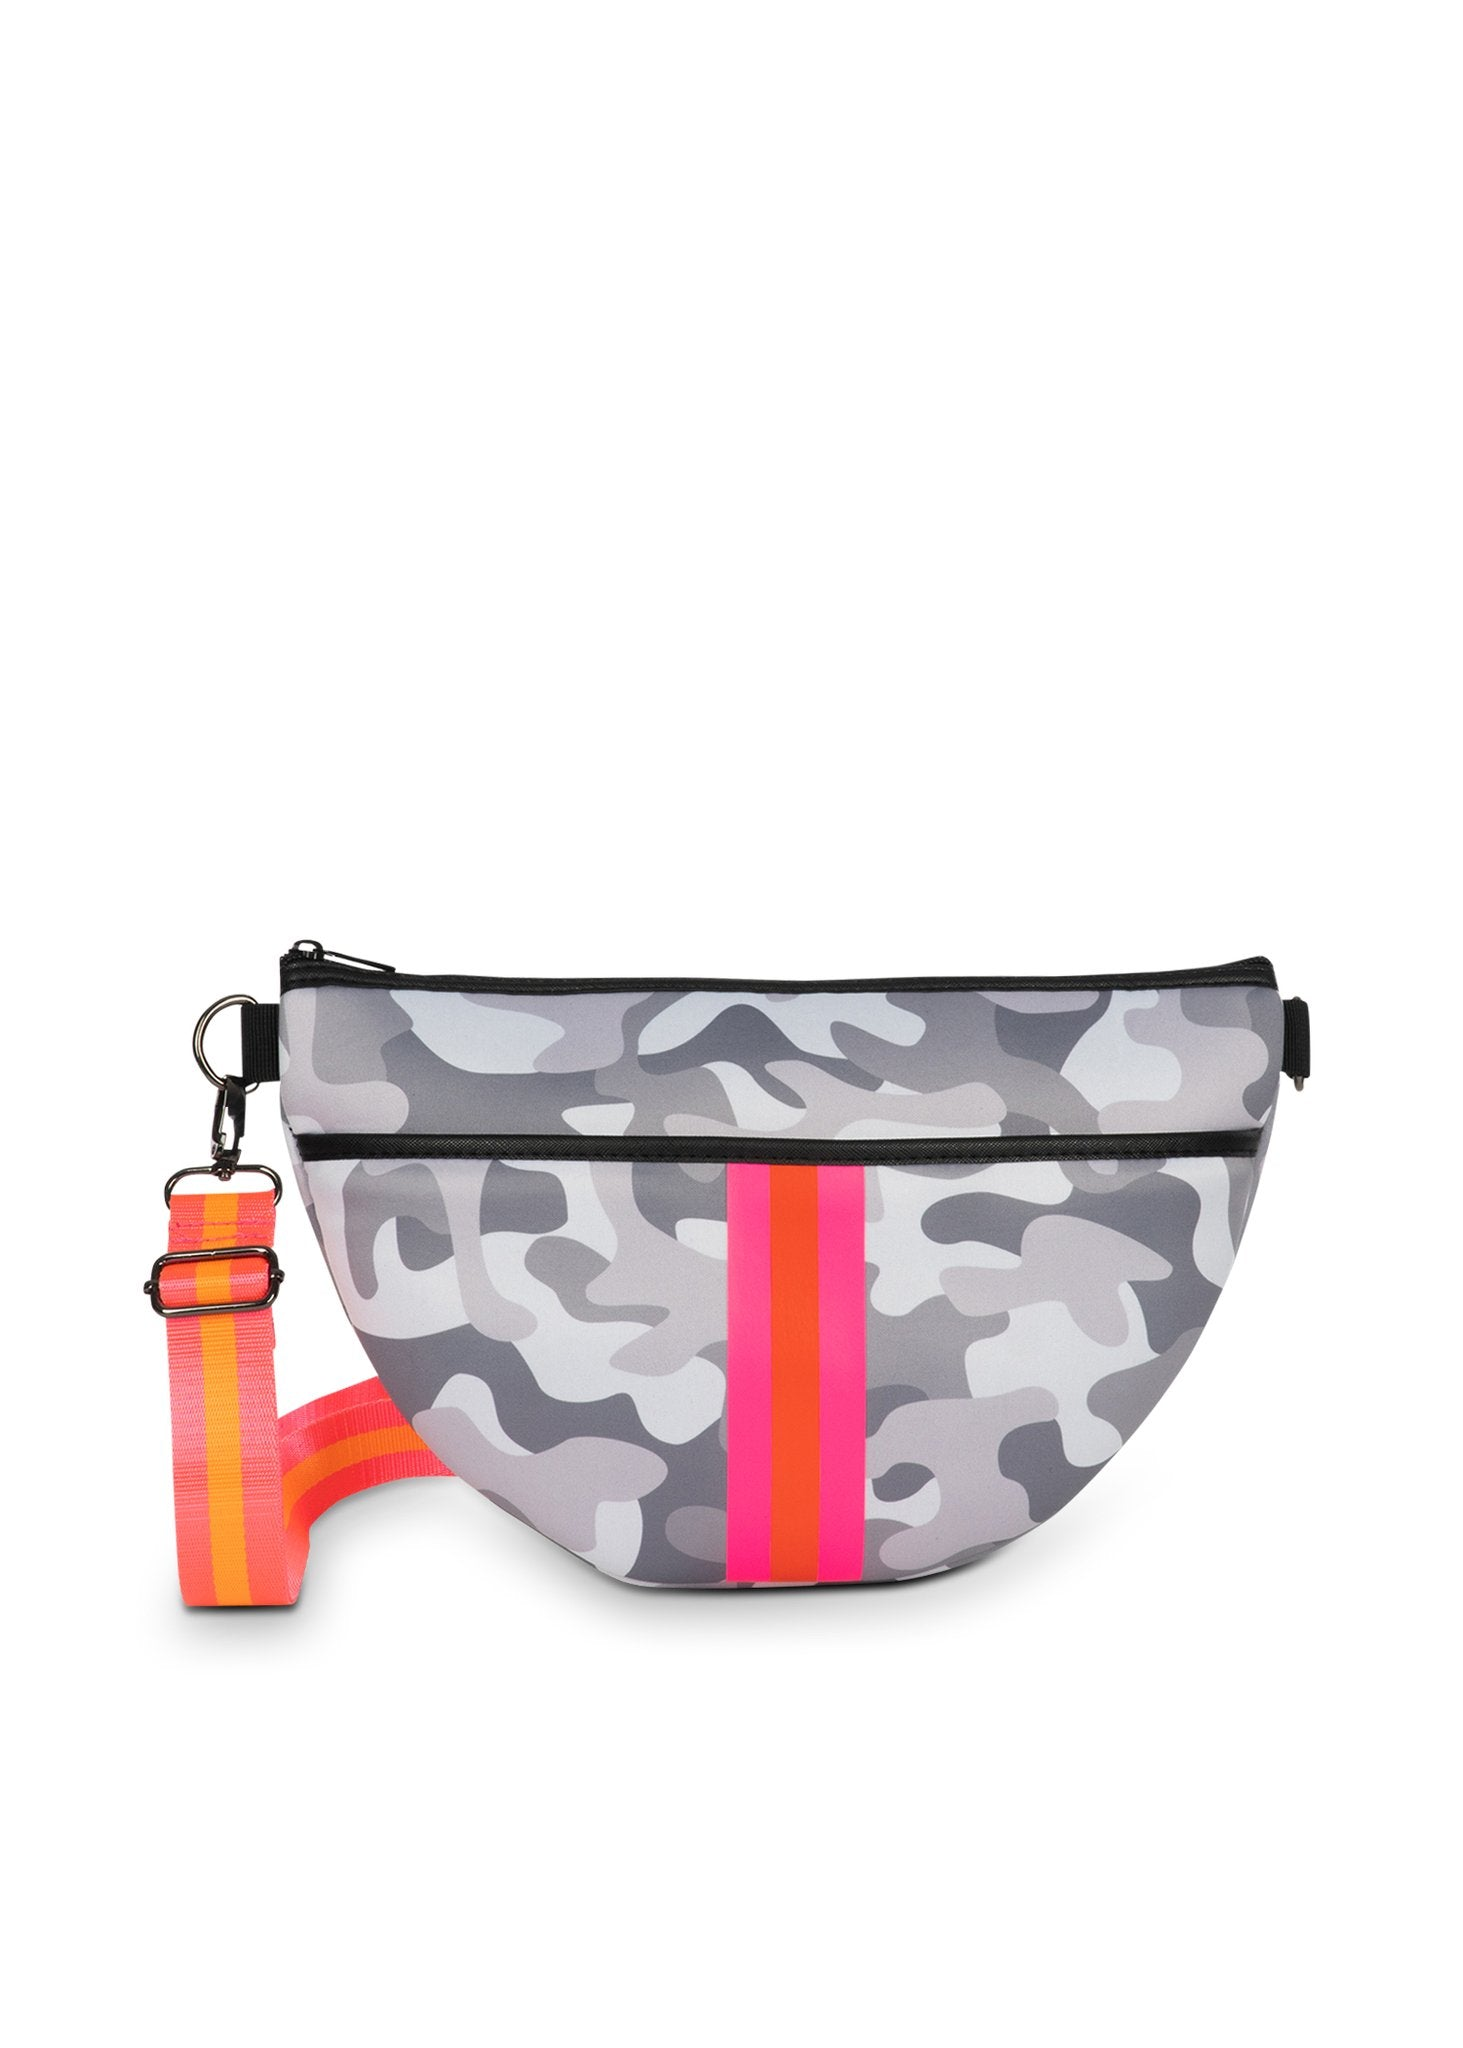 Haute Shore - Brett Rise Belt Bag (Bret, White Camo w/Pink Orange Stripe)